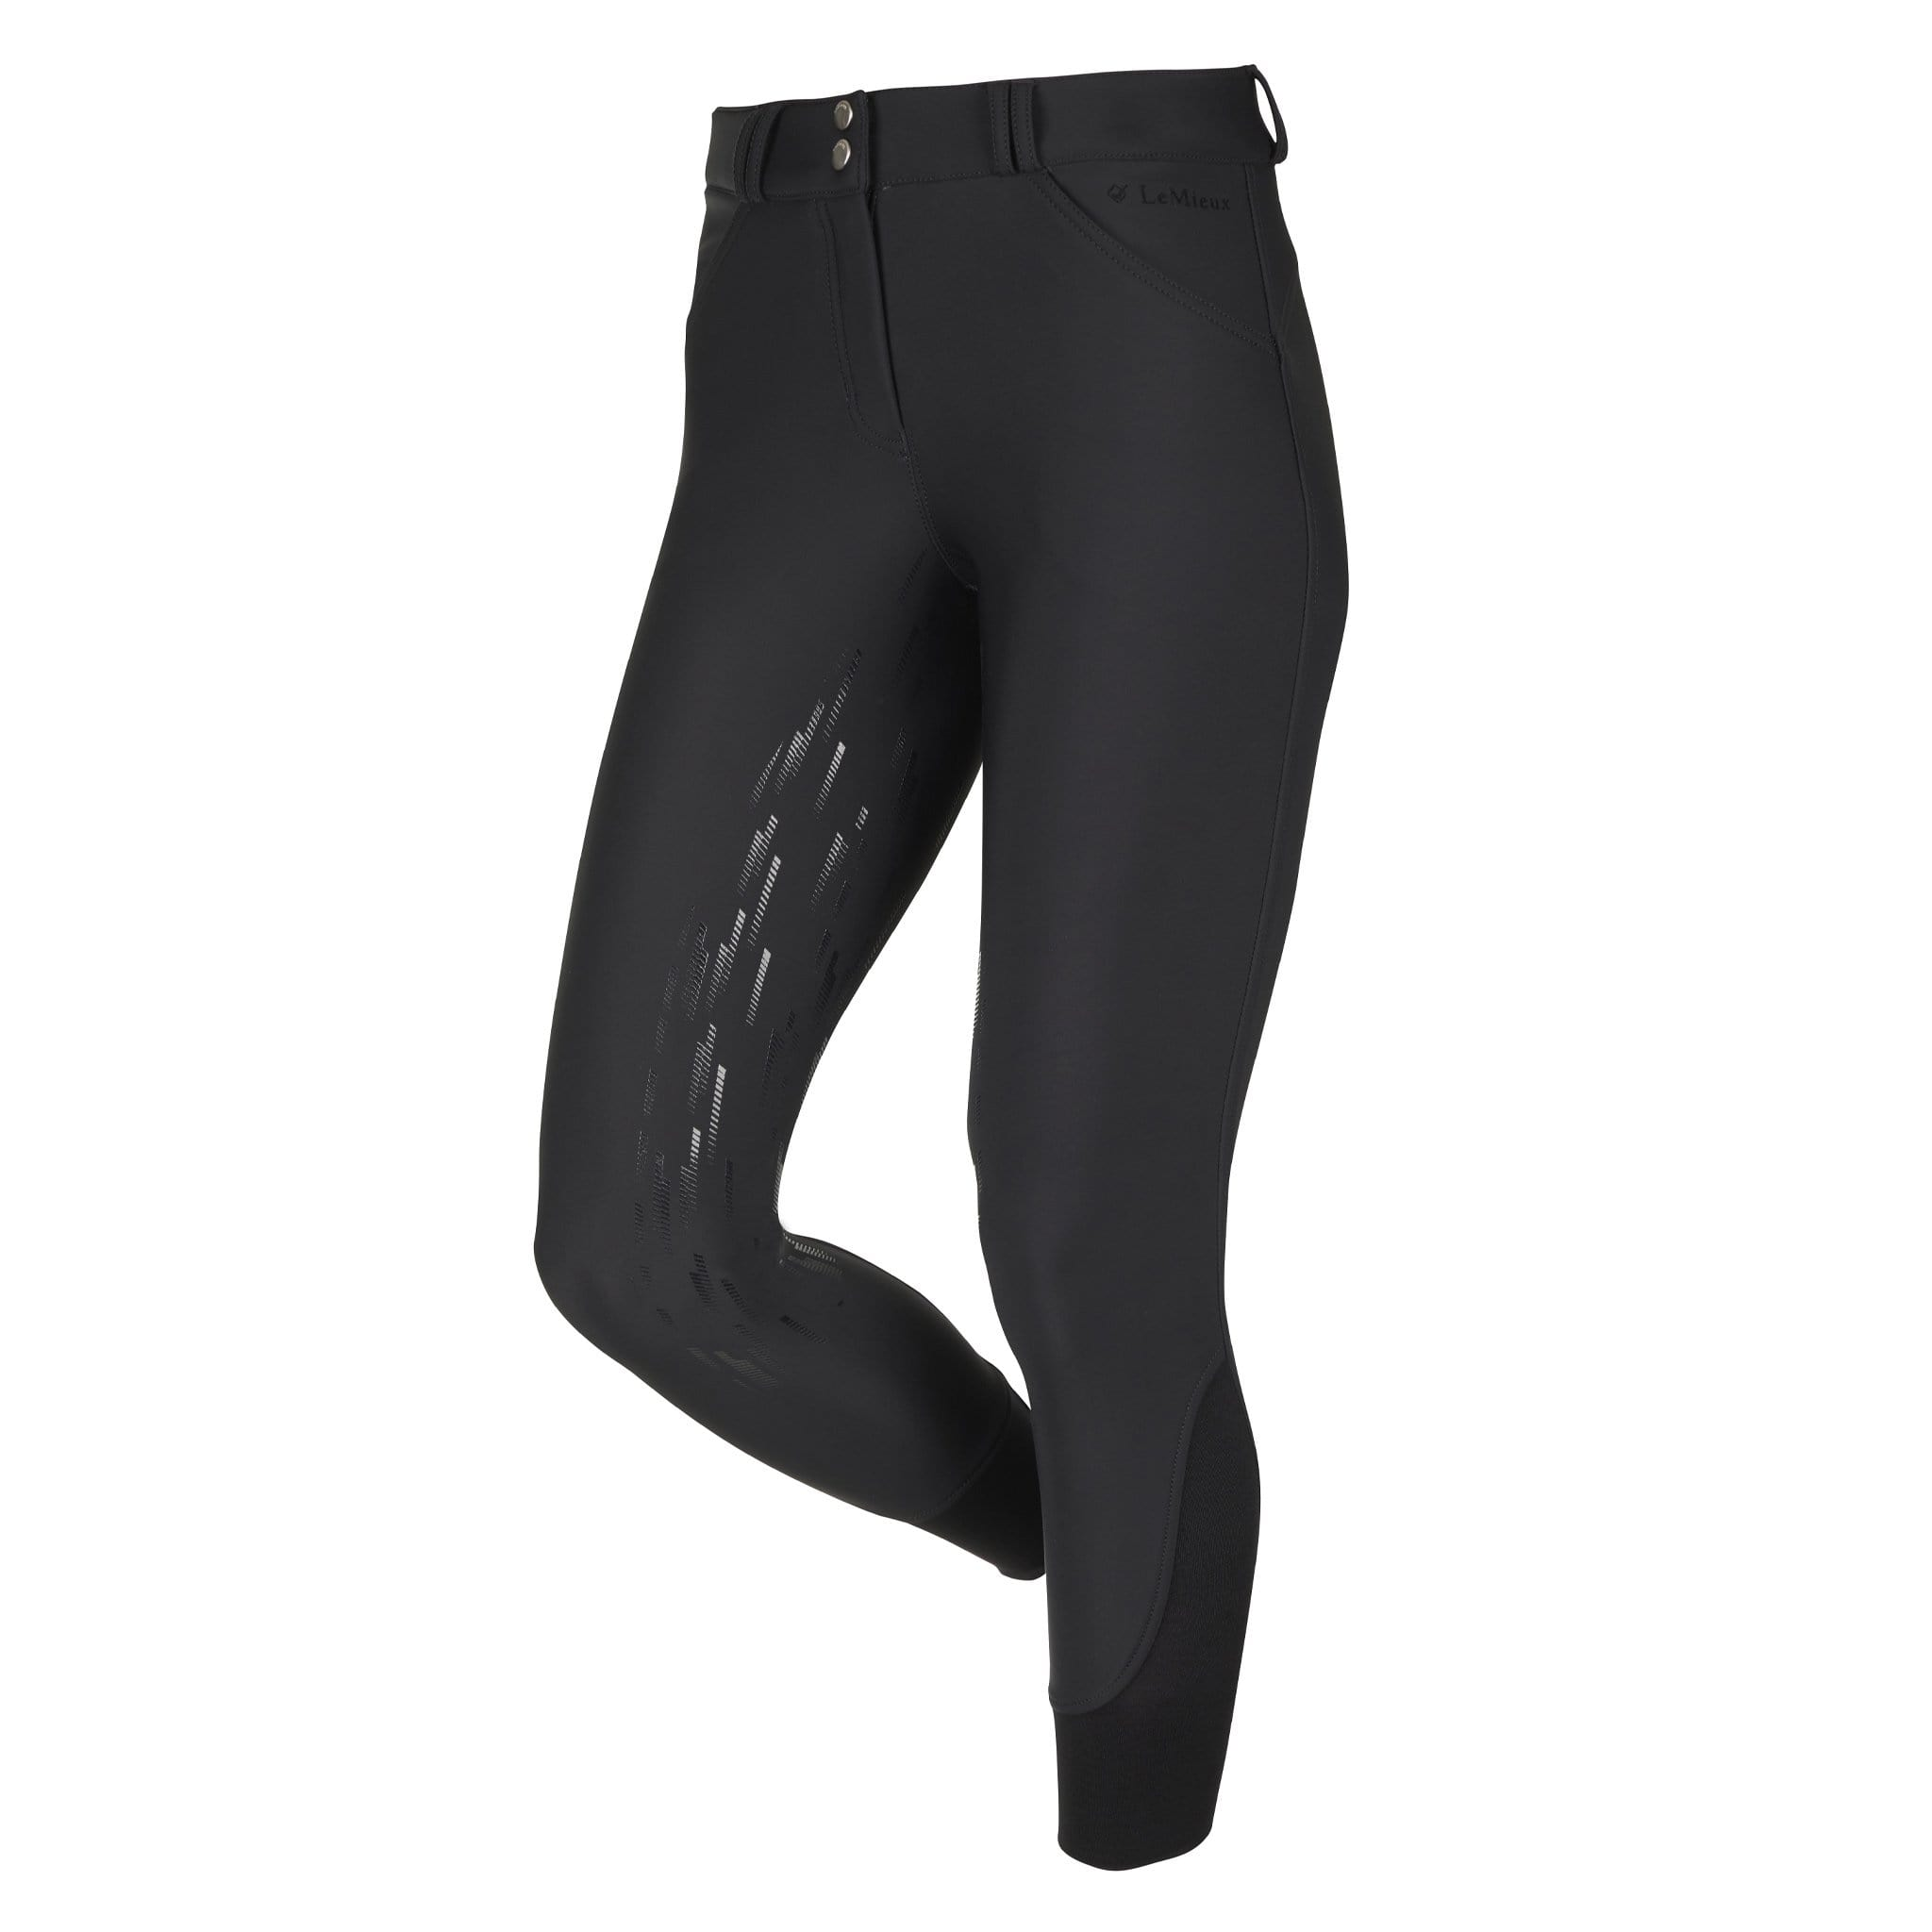 LeMieux Drytex Waterproof Silicone Full Seat Breeches 5528 Black Front